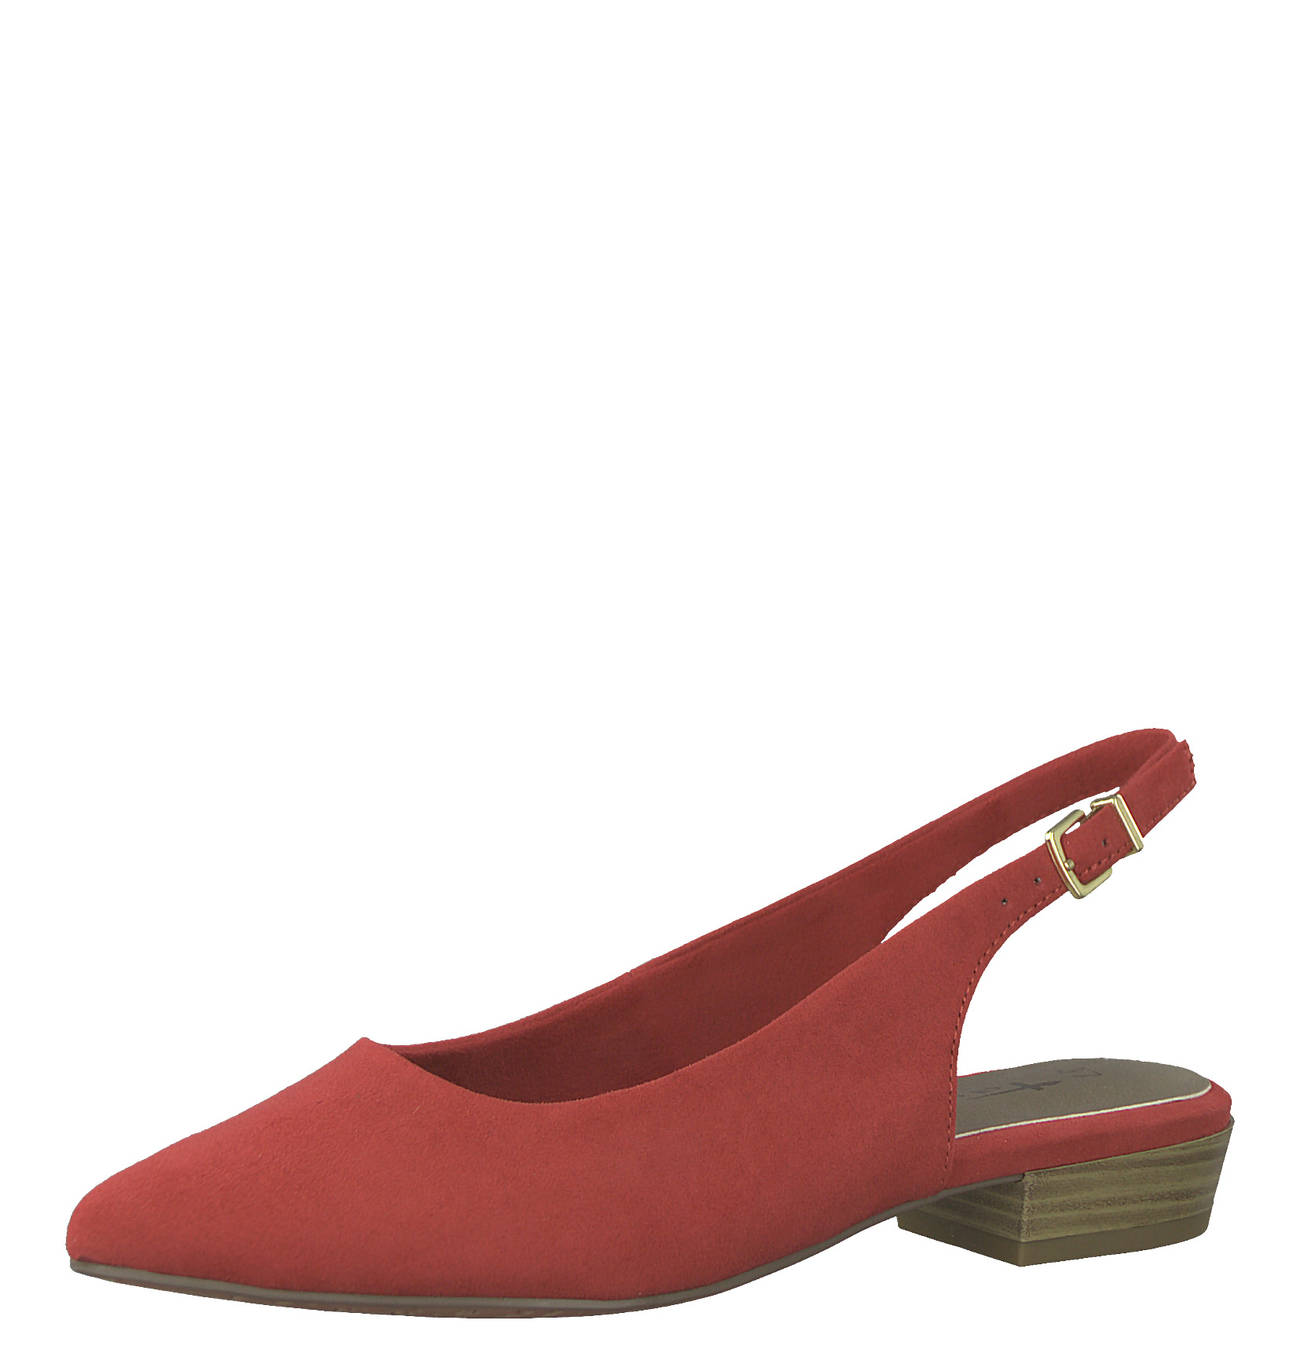 Sling Pumps, Blockabsatz, spitz | Blockabsatz schuhe